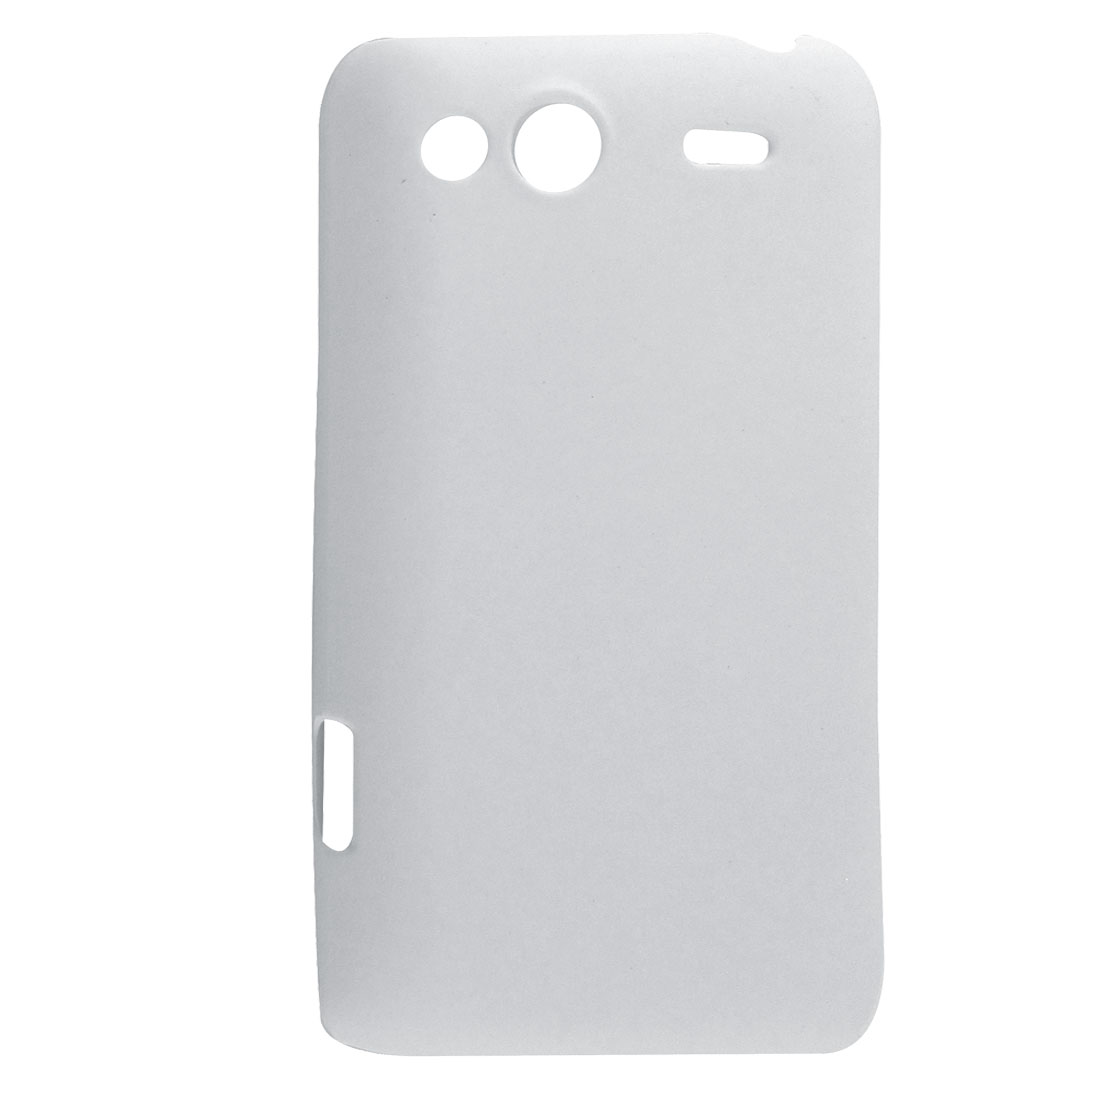 Rubberized Plastic Back Shell White for HTC Salsa G15